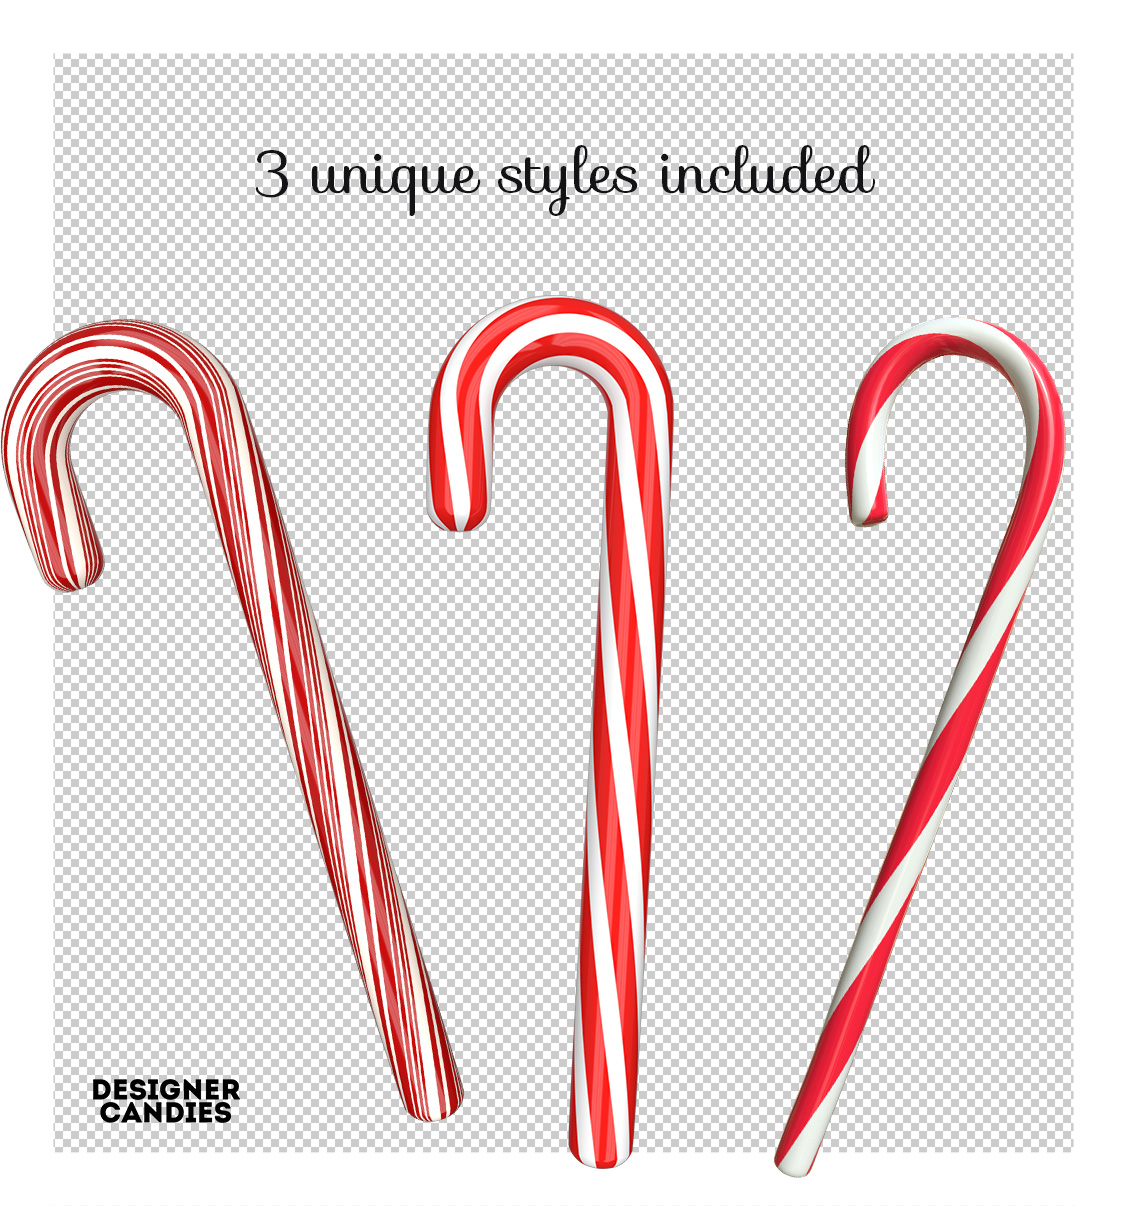 Candy Cane Renders in PNG Format